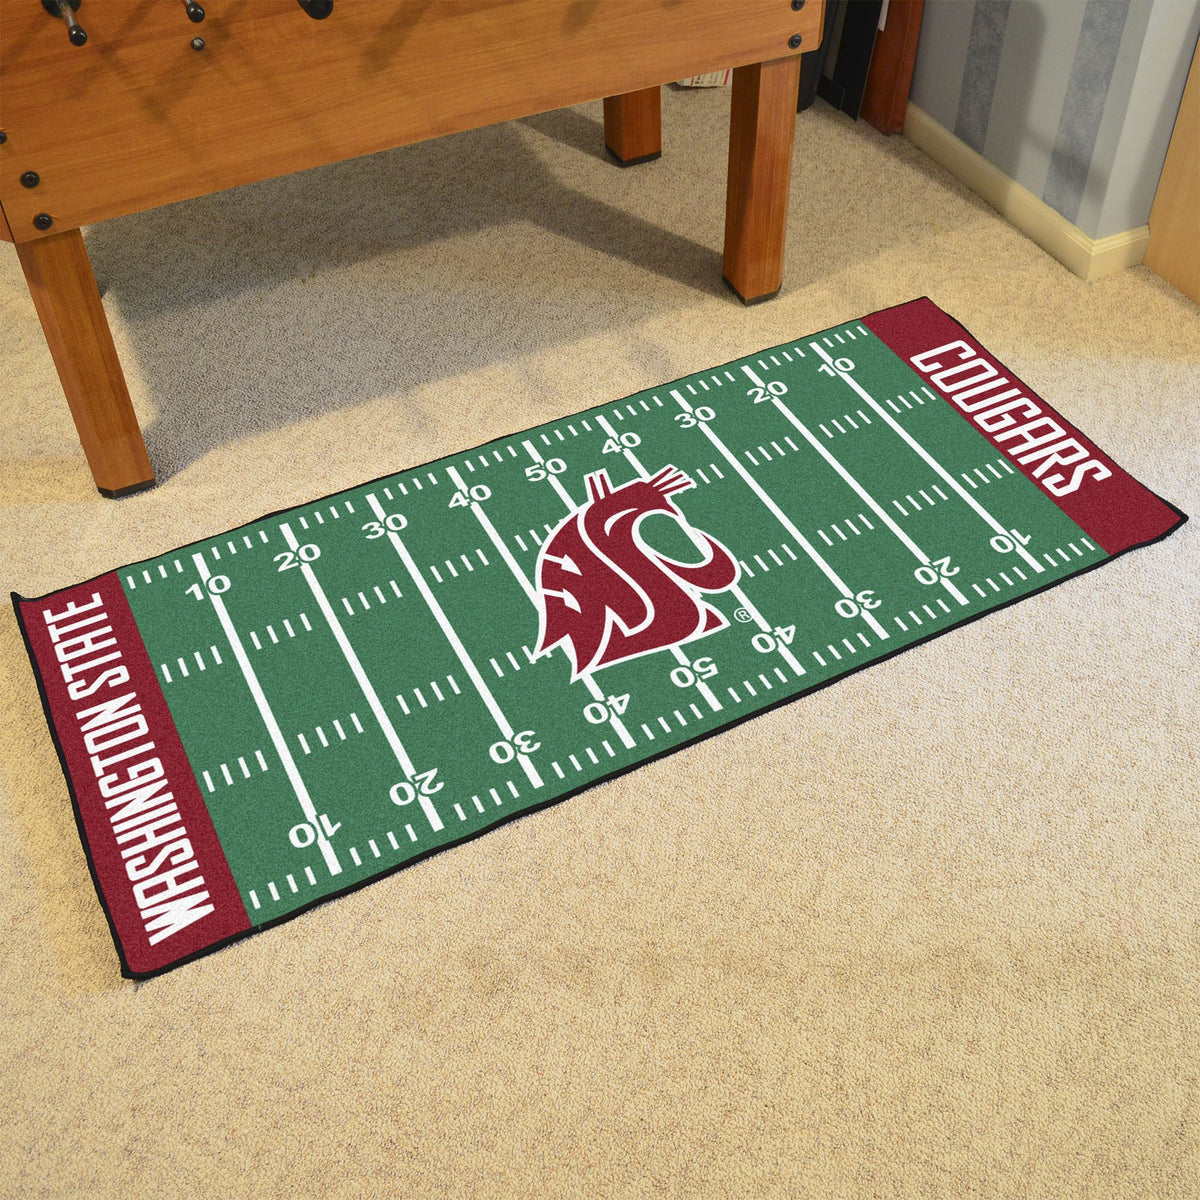 Collegiate - Football Field Runner Collegiate Mats, Rectangular Mats, Football Field Runner, Collegiate, Home Fan Mats Washington State